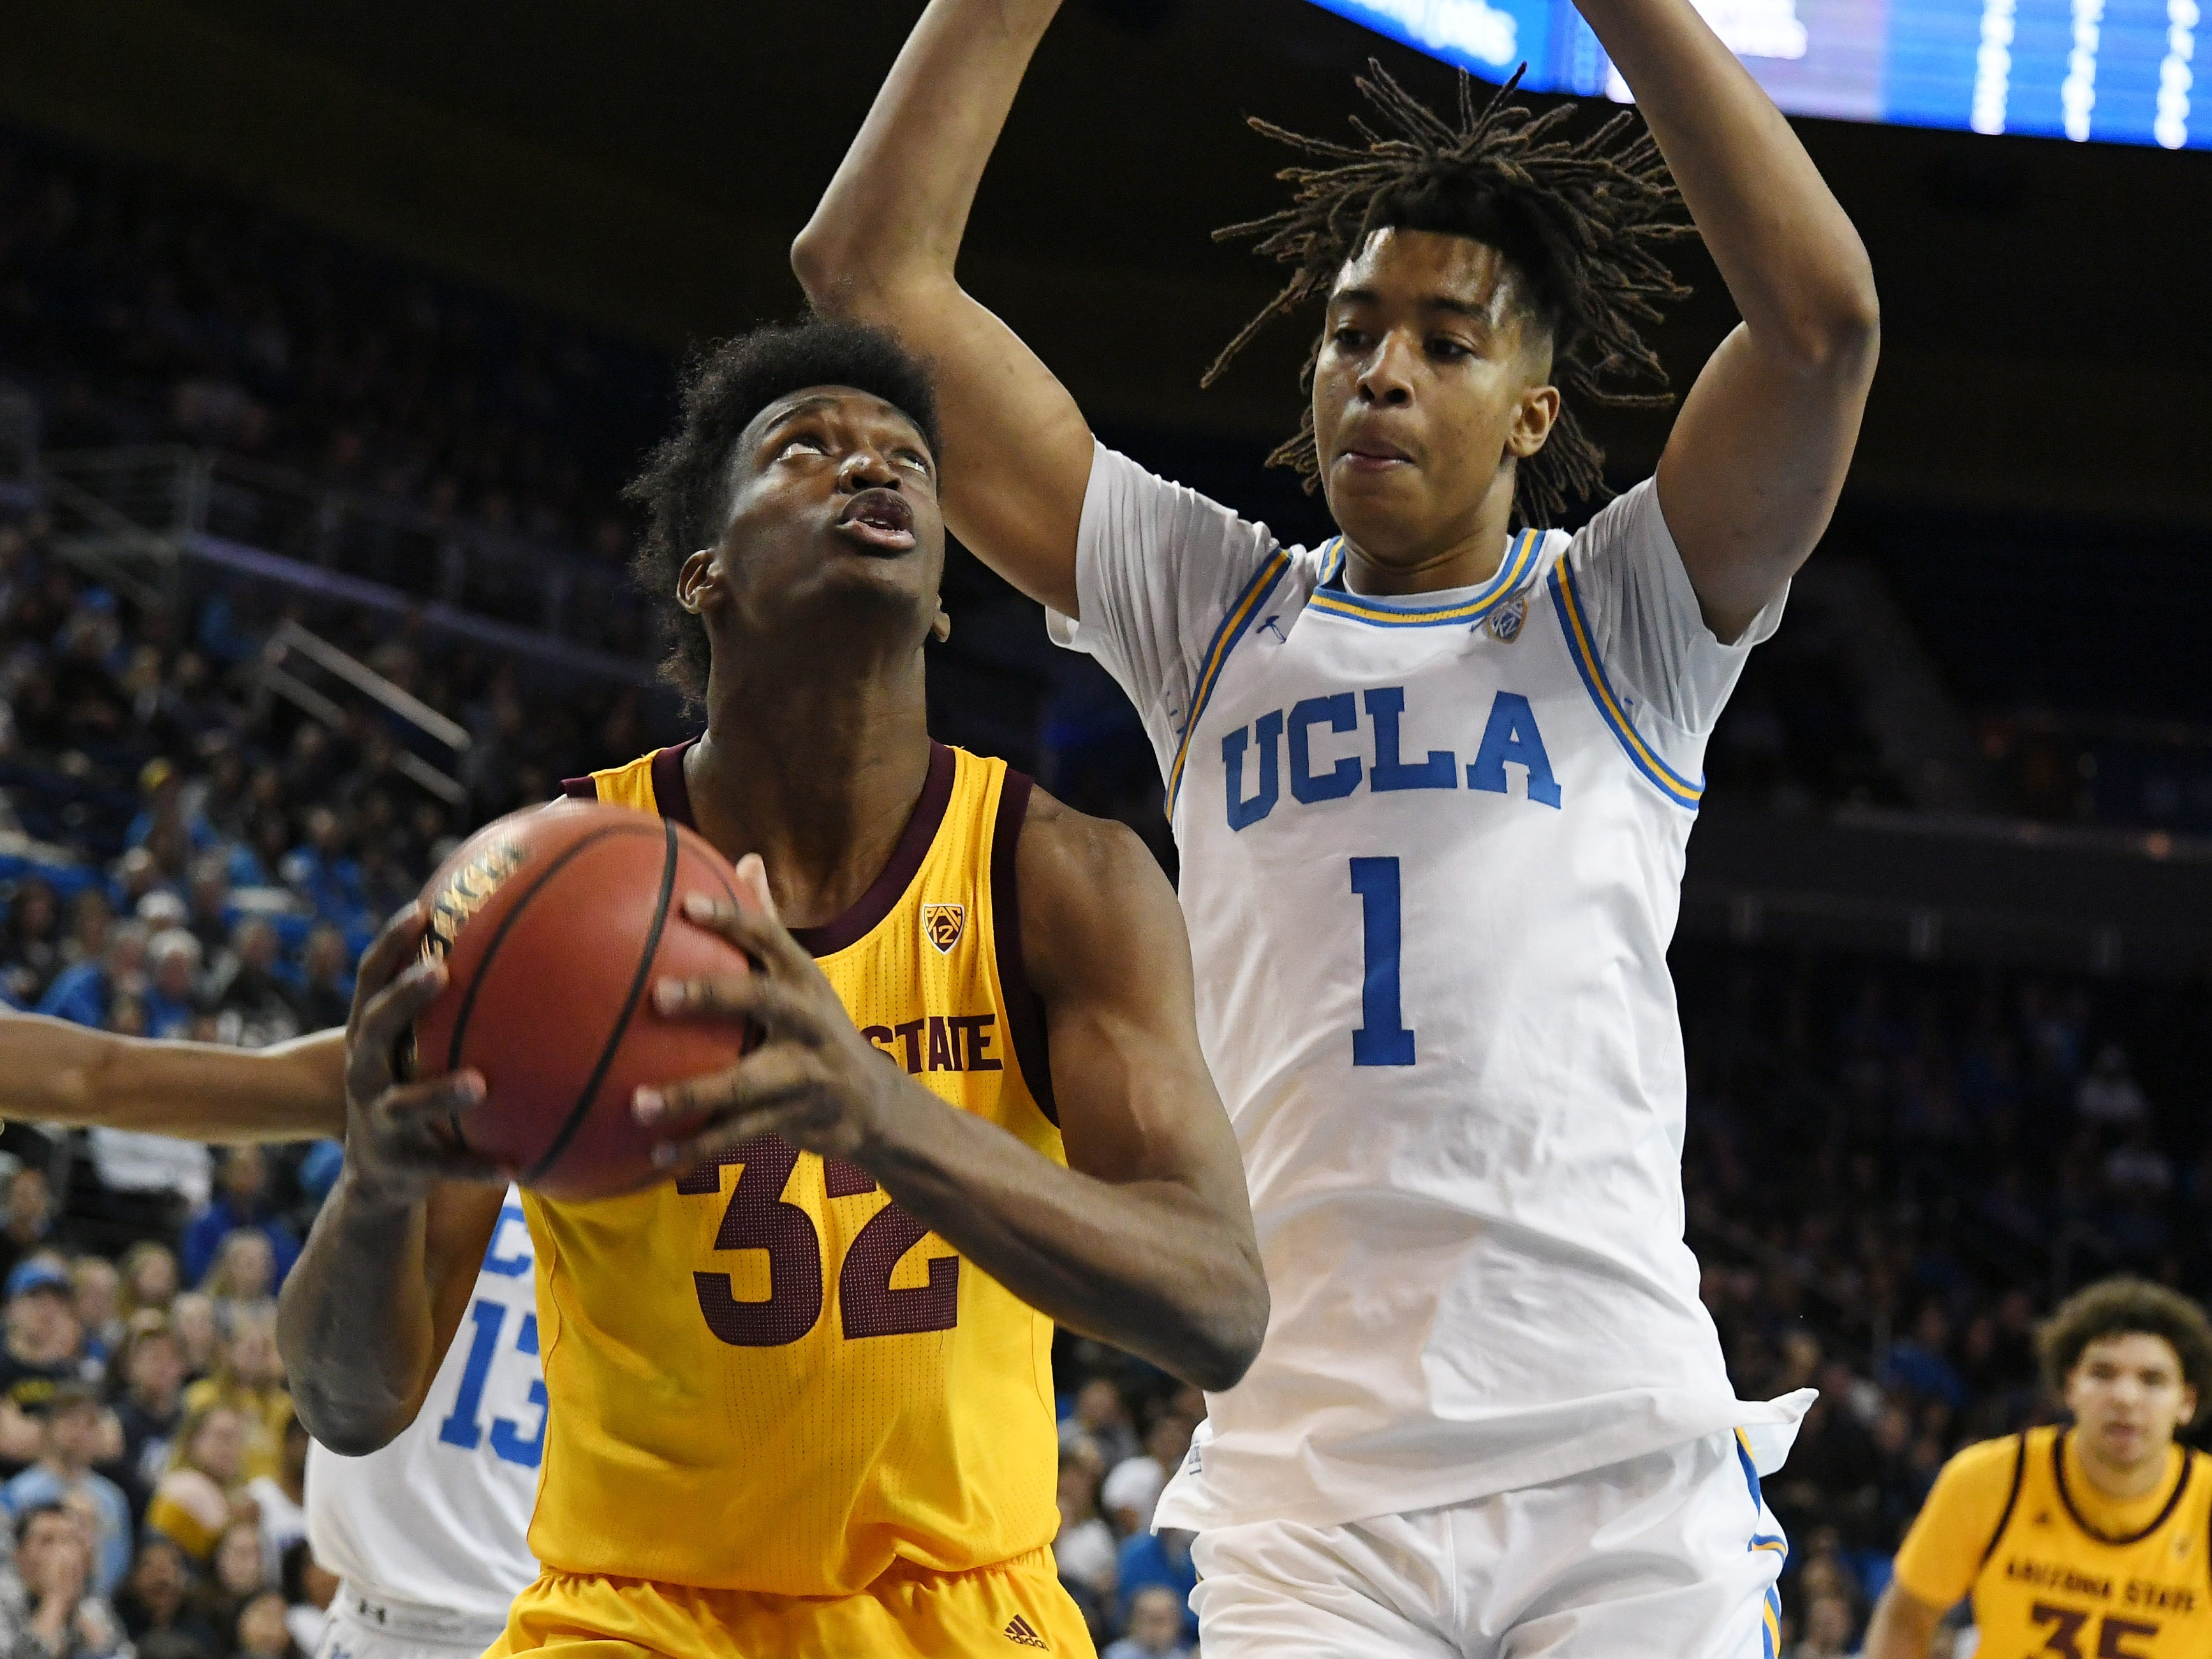 Jan 24, 2019; Los Angeles, CA, USA; Arizona State Sun Devils forward De'Quon Lake (32) shoots against UCLA Bruins center Moses Brown (1) during the first half at Pauley Pavilion. Mandatory Credit: Richard Mackson-USA TODAY Sports